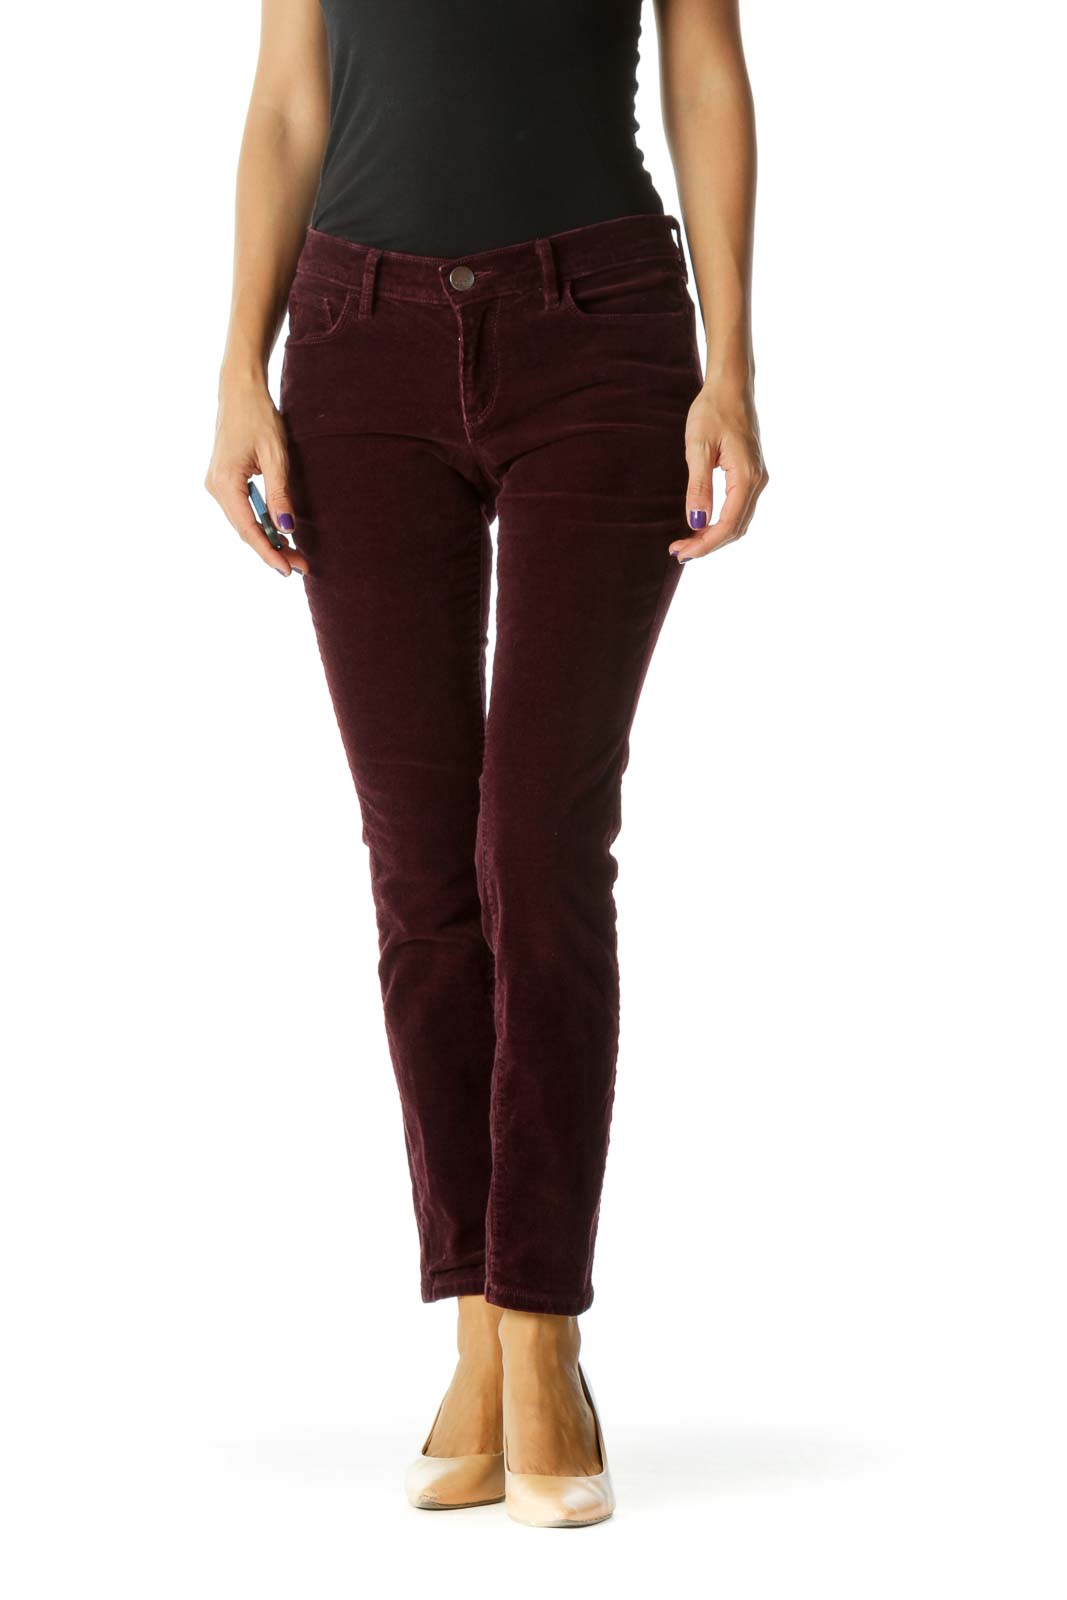 Purple Corduroy Skinny Stretch Pants (Ankle/Petite)